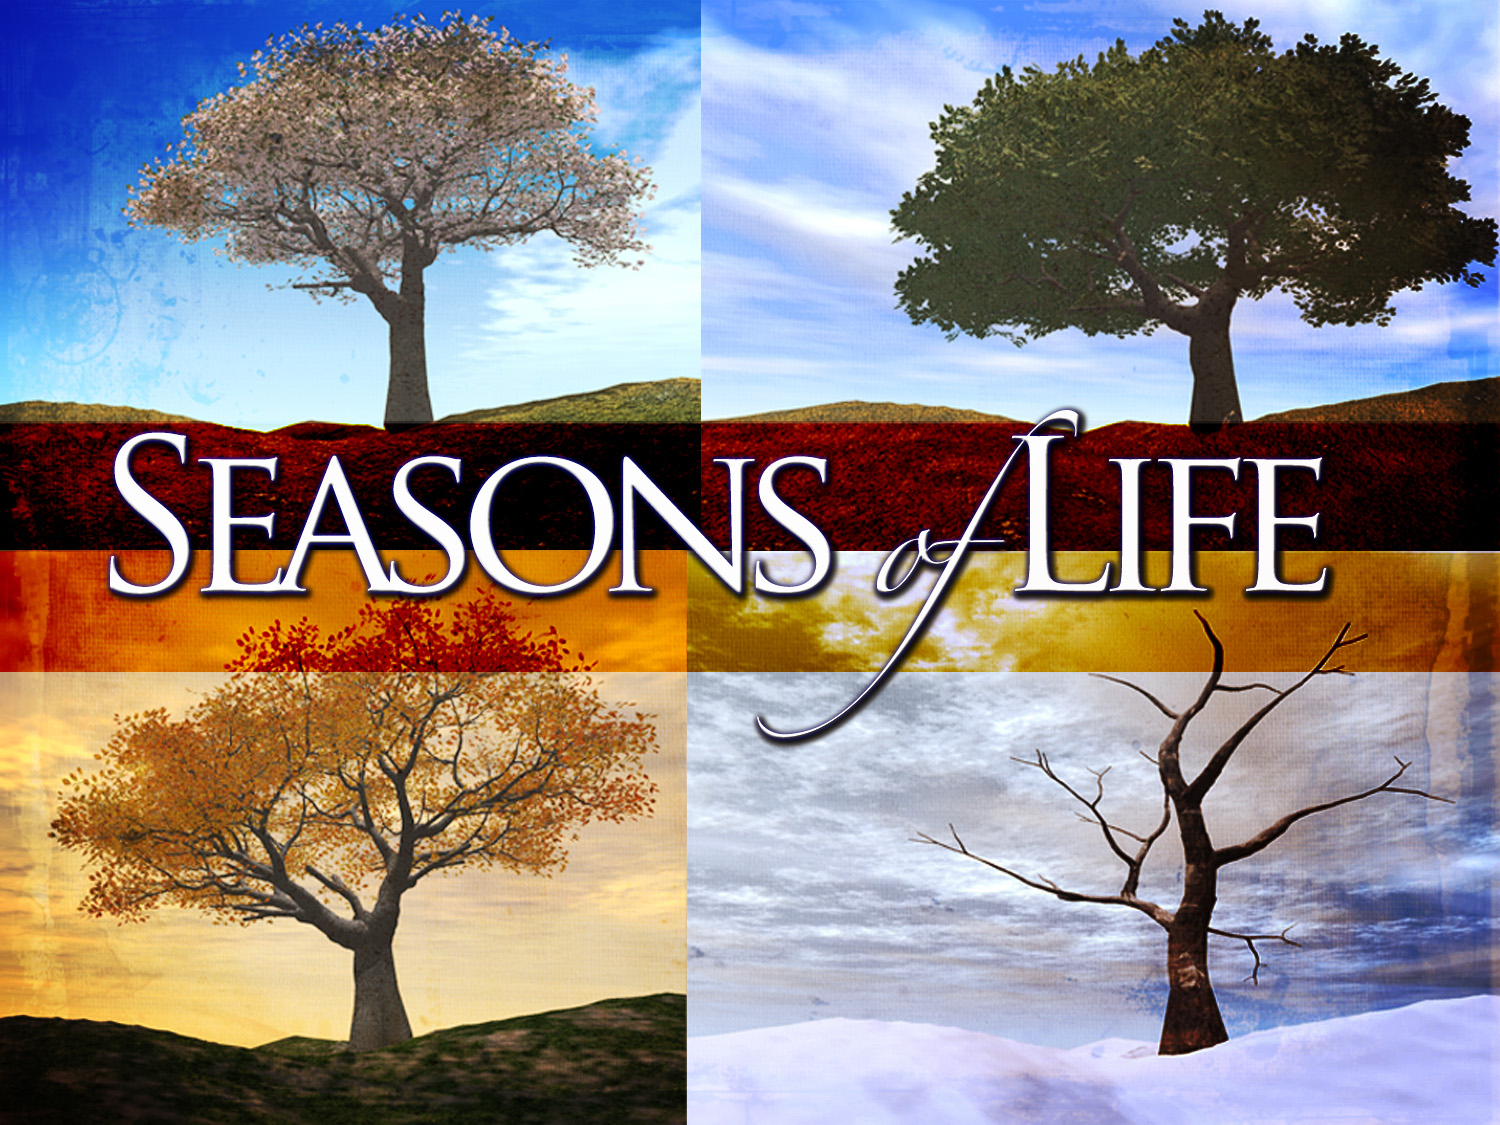 "seasons of life ""seasons change, friends move away, and life goes on from day to day flowers fade and streams go dry and many times we wonder why yet we can always be assured because god tells us in his word, that unlike changes in the weather, love goes on and las."